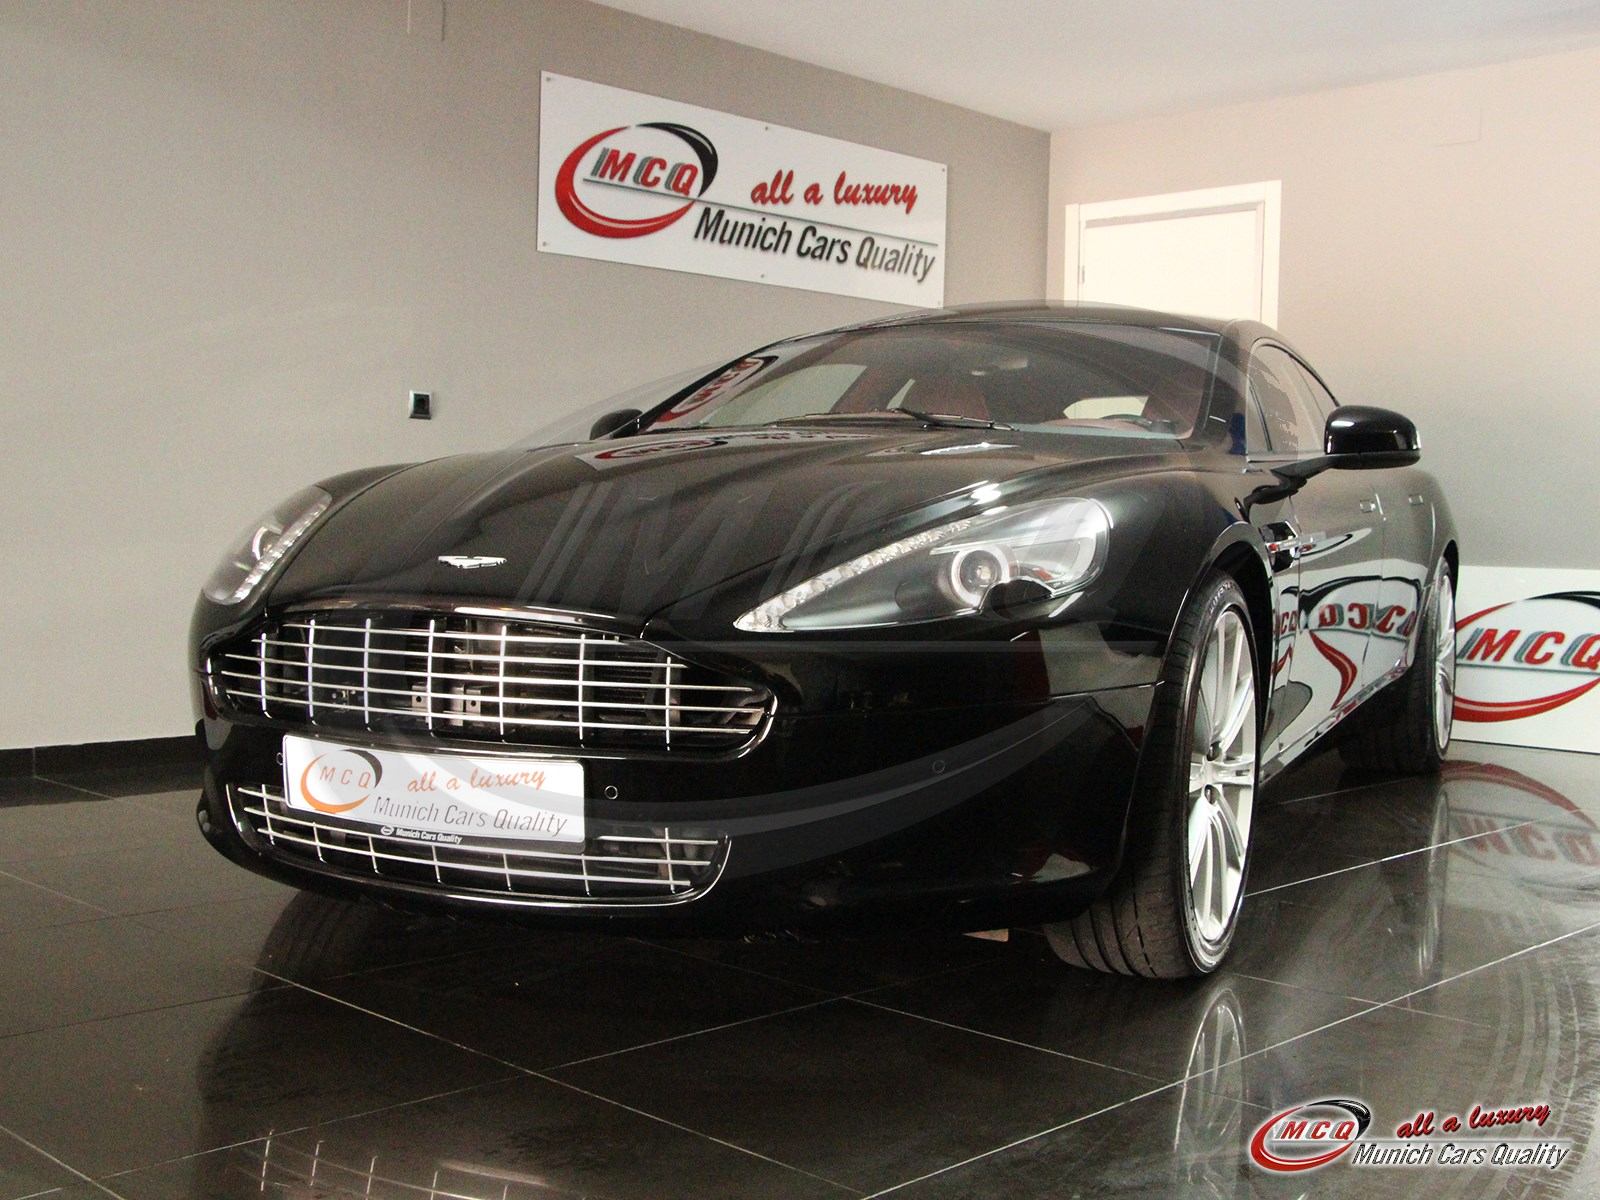 aston martin rapide munich cars quality. Black Bedroom Furniture Sets. Home Design Ideas